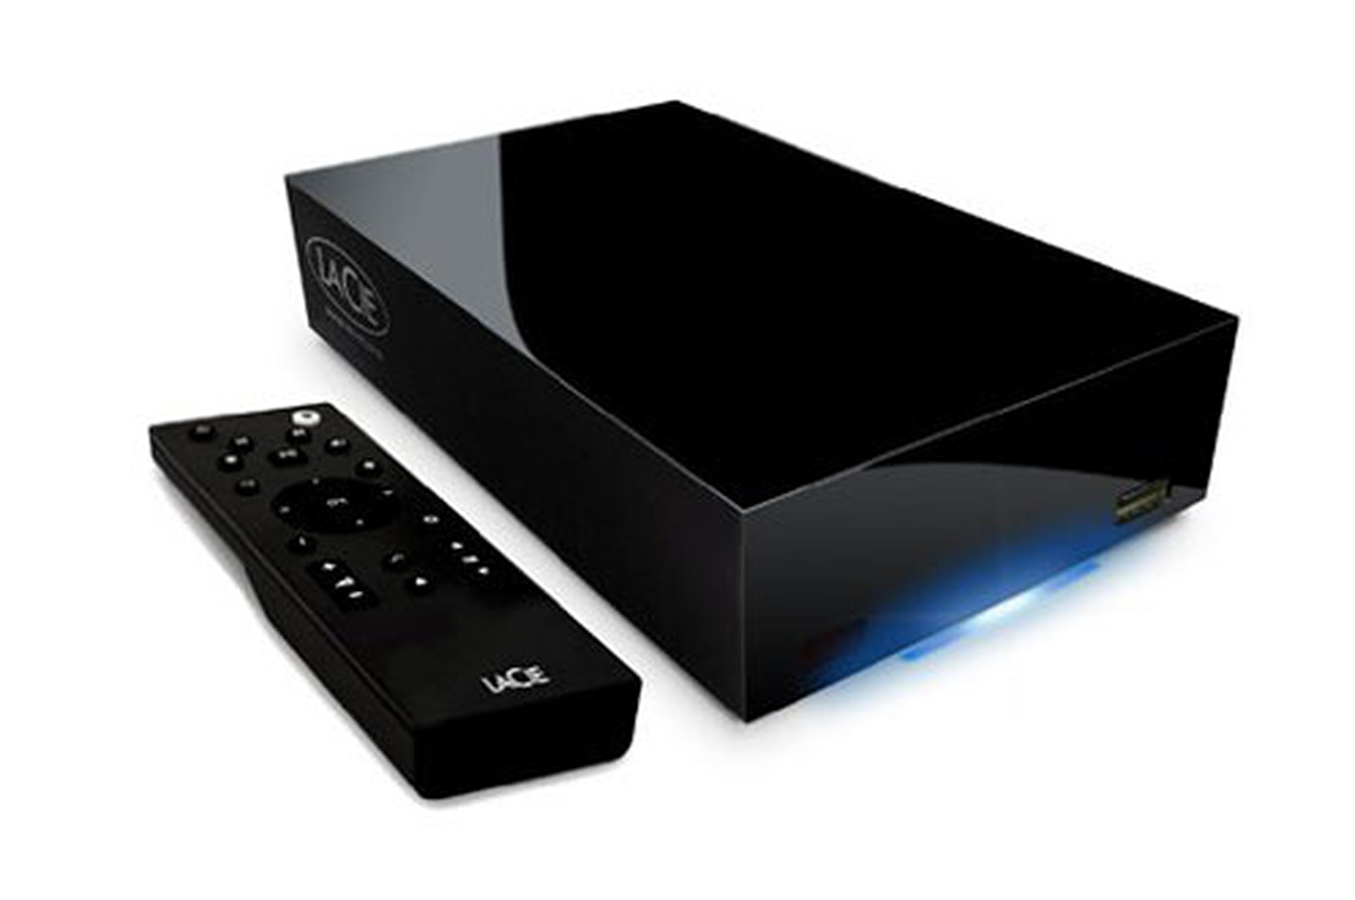 disque dur multimedia lacie lacinema playhd 1to usb 2 0 hdmi 1292633 darty. Black Bedroom Furniture Sets. Home Design Ideas